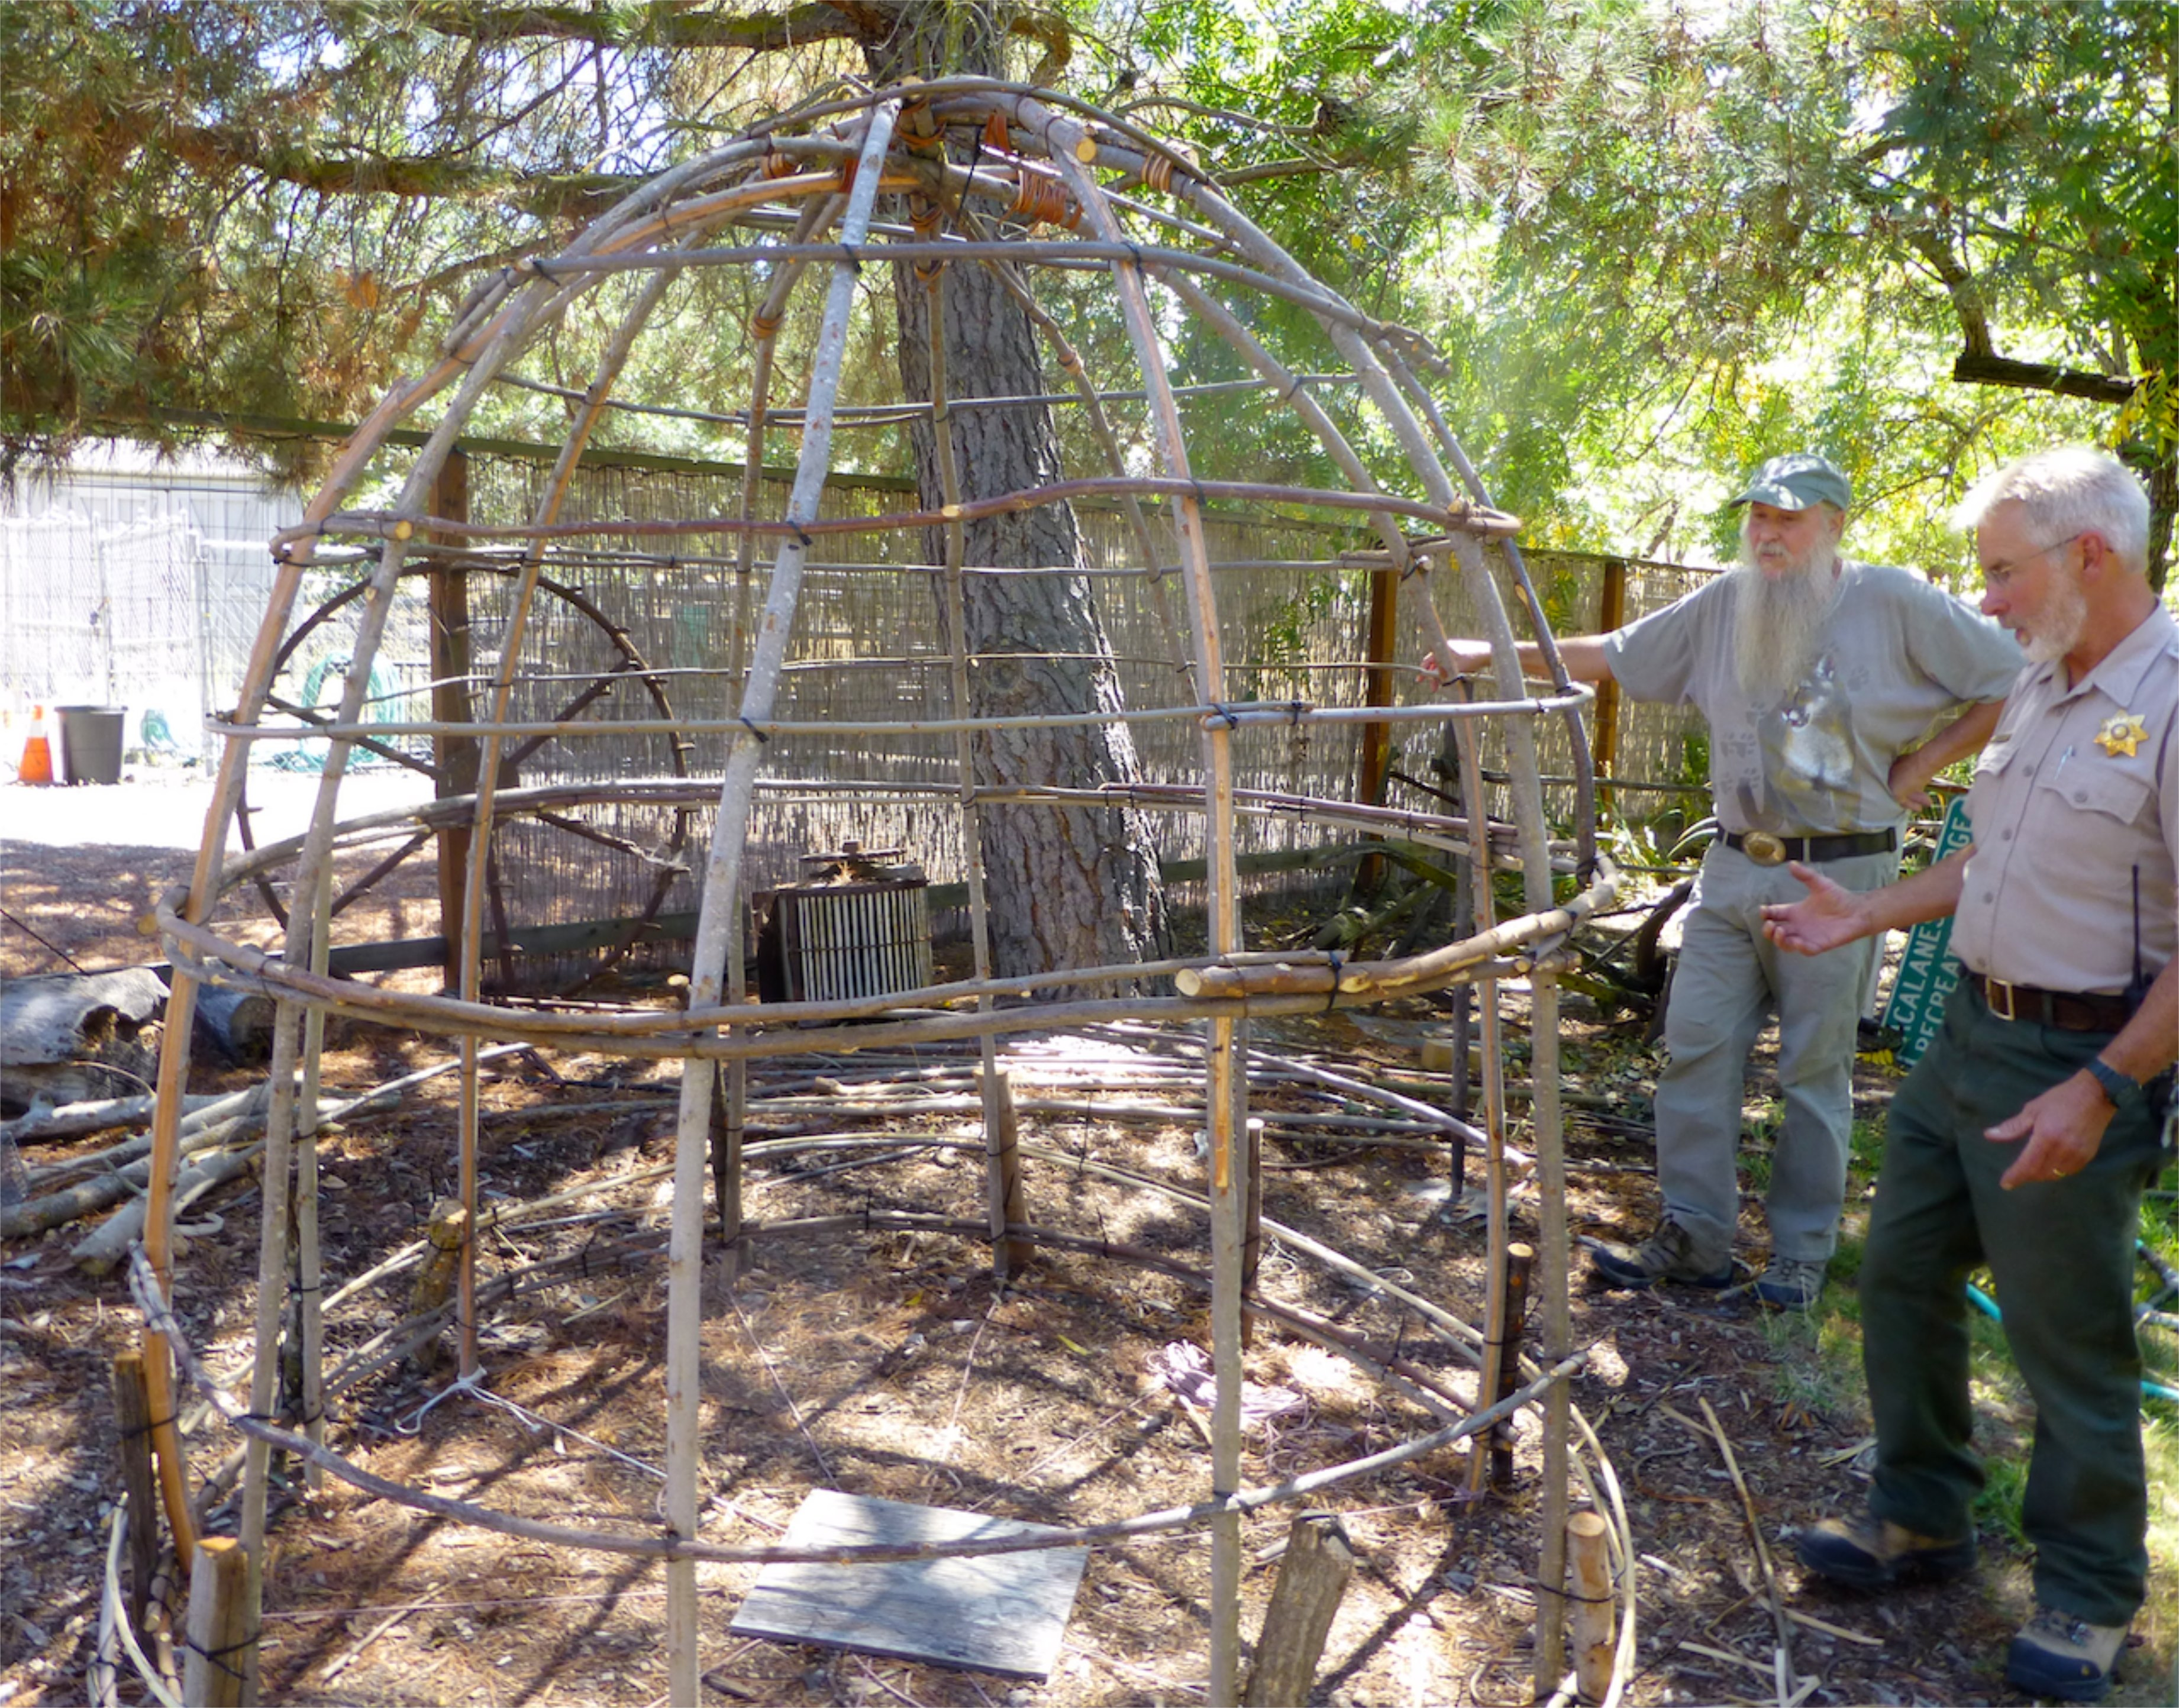 Ranger Bruce Weidman (right) and Doc Hale build a Miwok dwelling at Sugarloaf Open Space